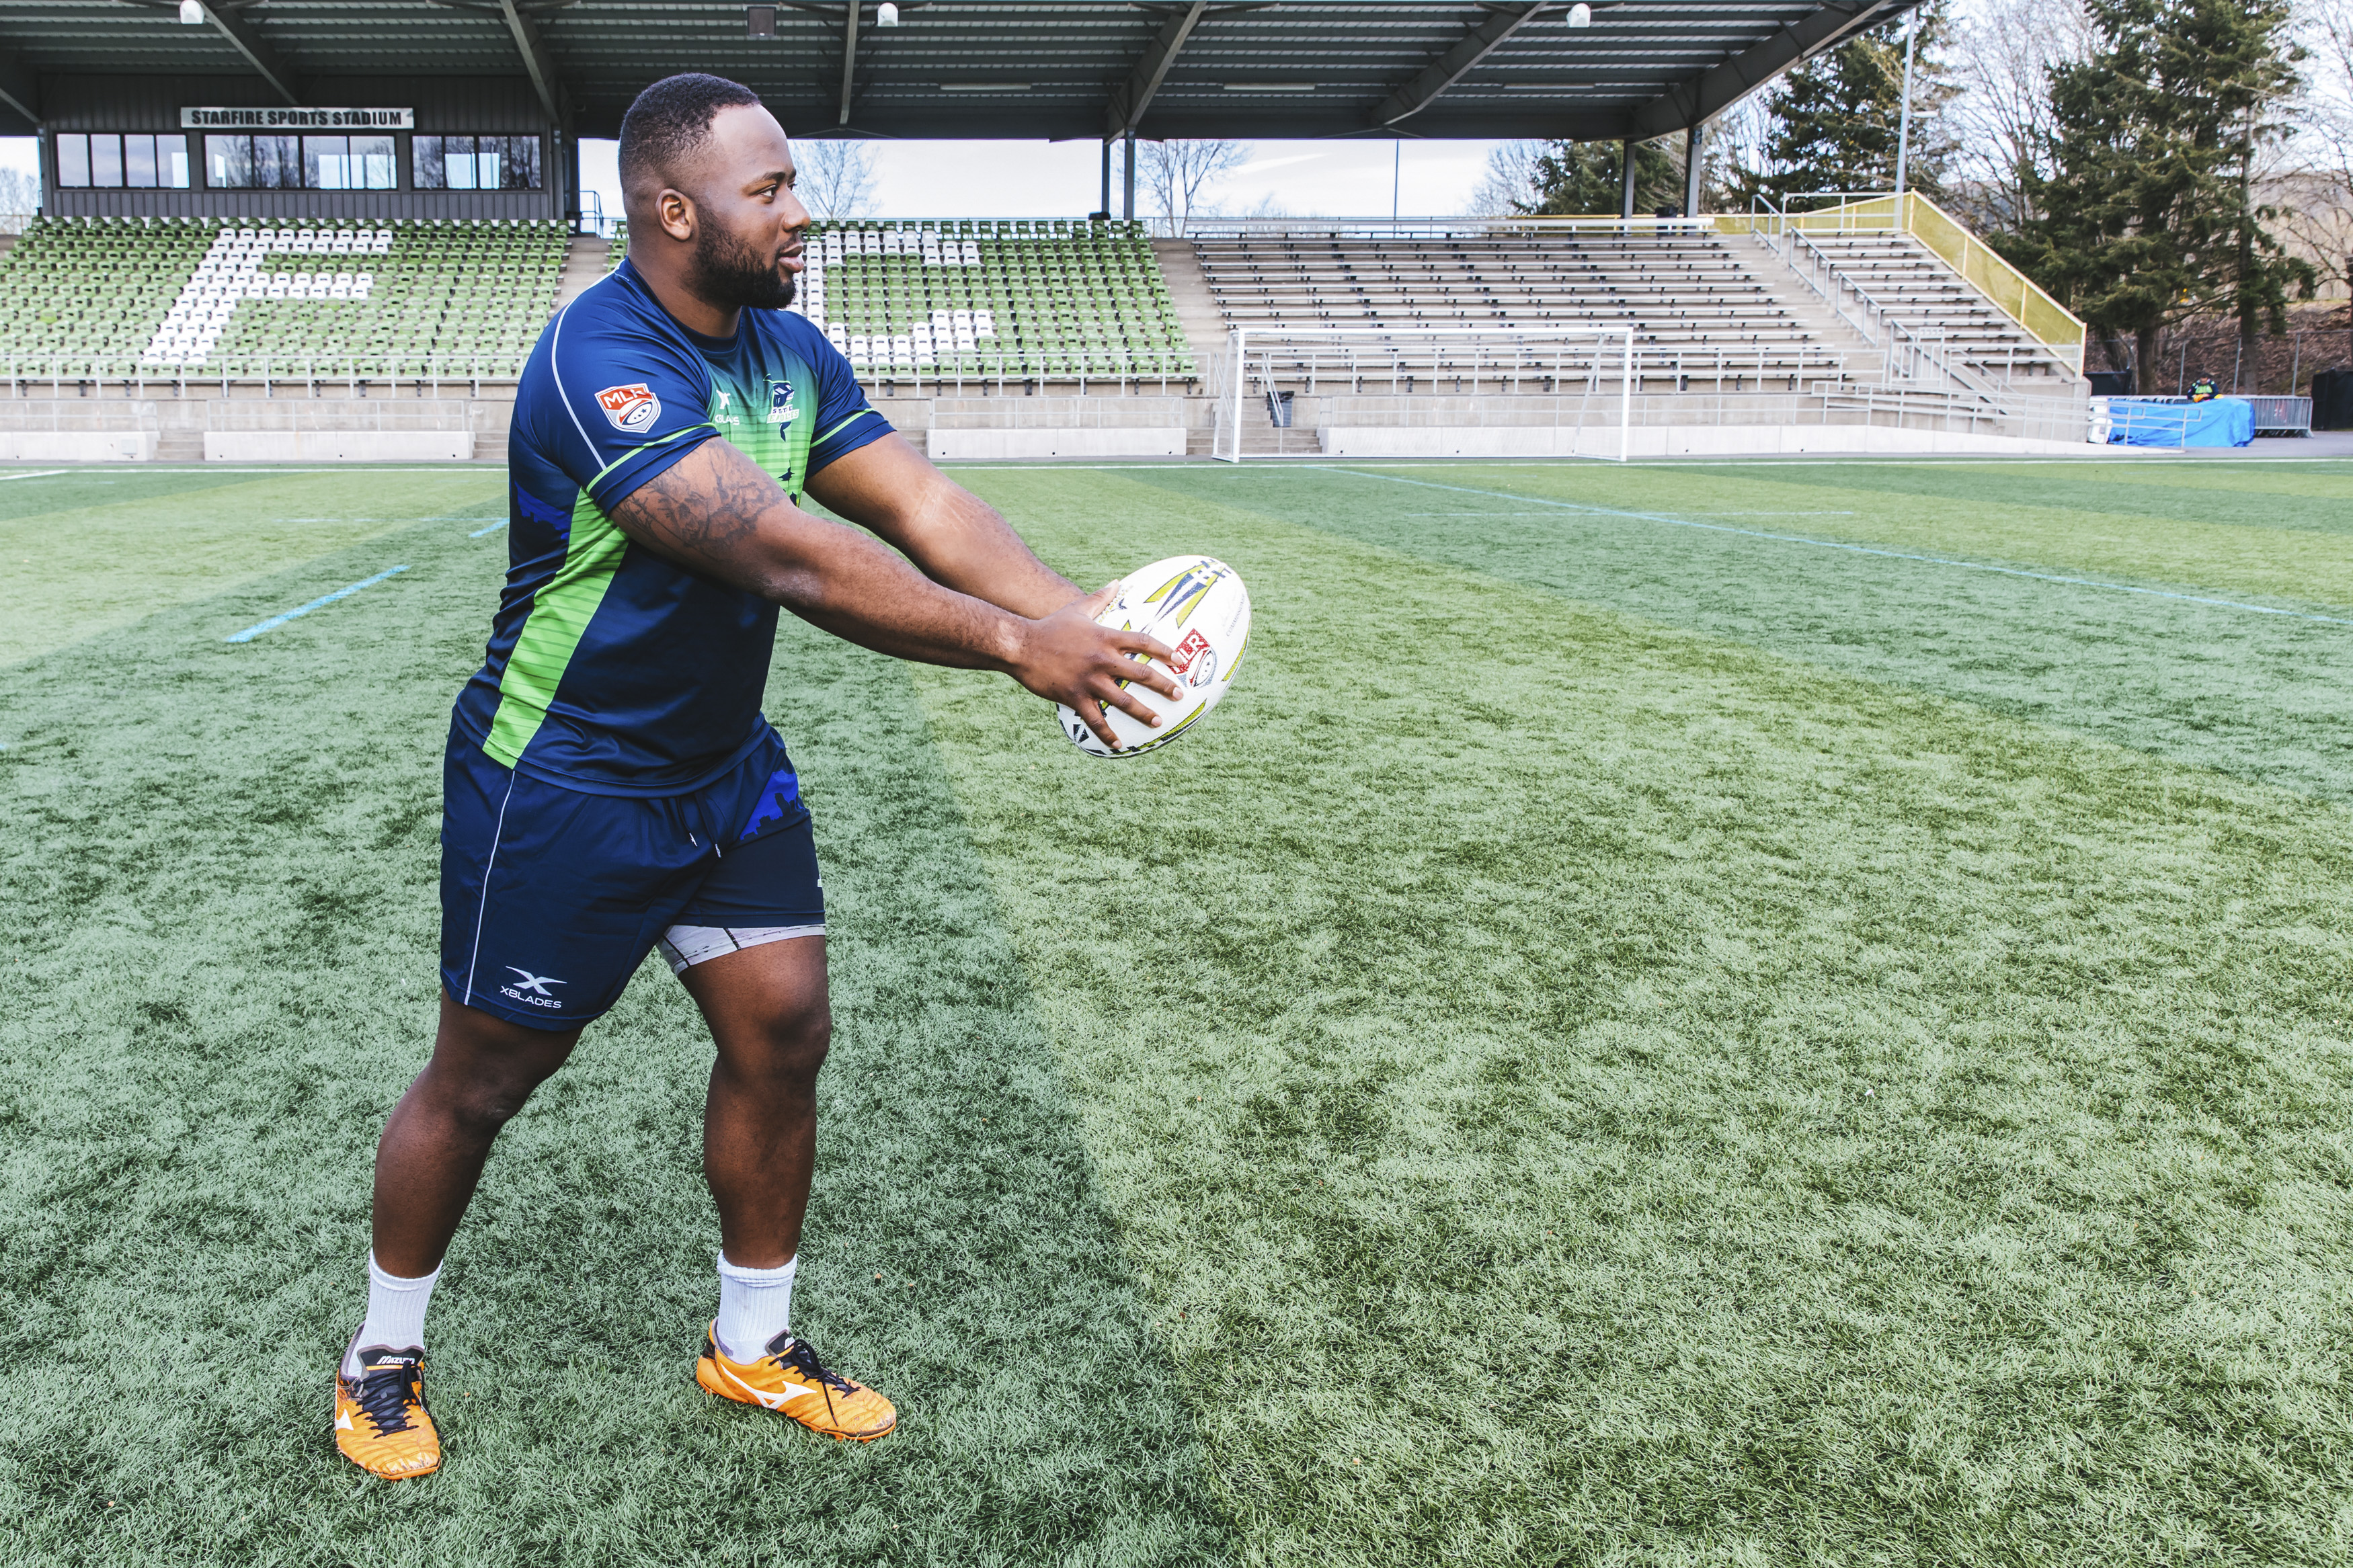 Meet DJ! DJ is a Loosehead Prop for the Seawolves. The 24 year old is originally from Oakville, Ontario, Canada. His favorite snack is Mac & Cheese and his guilty pleasure television show is The Office. (Image: Sunita Martini / Seattle Refined).